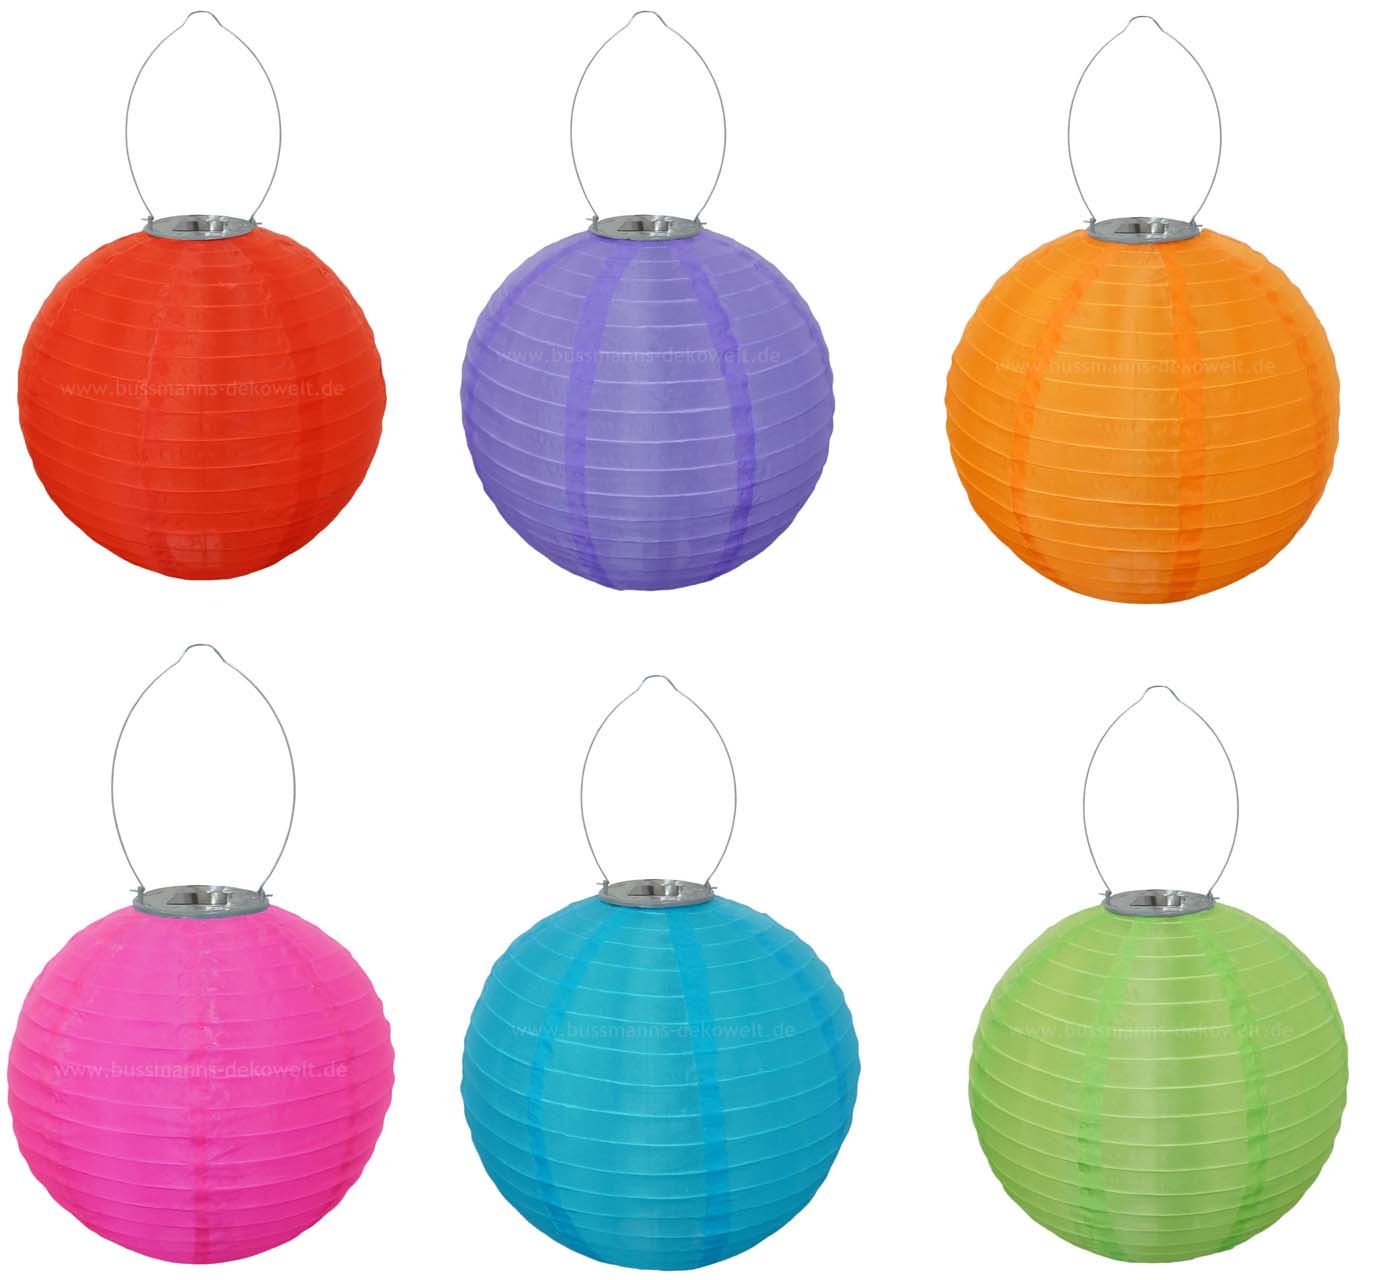 anmutiger led solar lampion bunt rund 30cm lampions solarlampion ebay. Black Bedroom Furniture Sets. Home Design Ideas